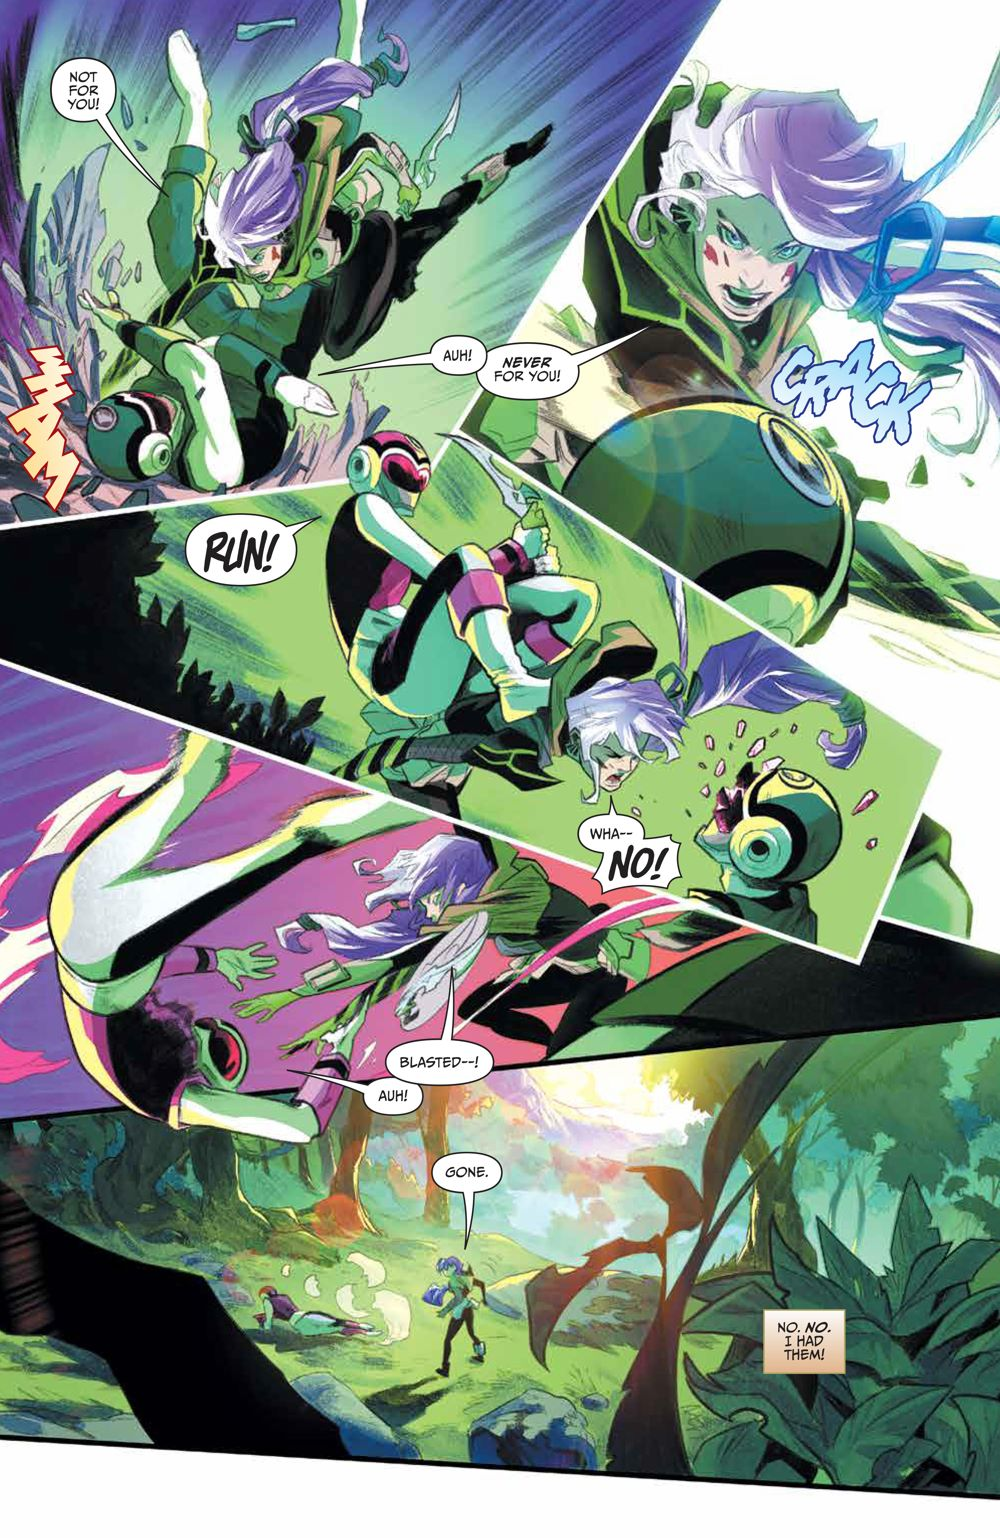 PR_Unlimited_HeirDarkness_001_PRESS_6 ComicList Previews: POWER RANGERS UNLIMITED HEIR TO THE DARKNESS #1